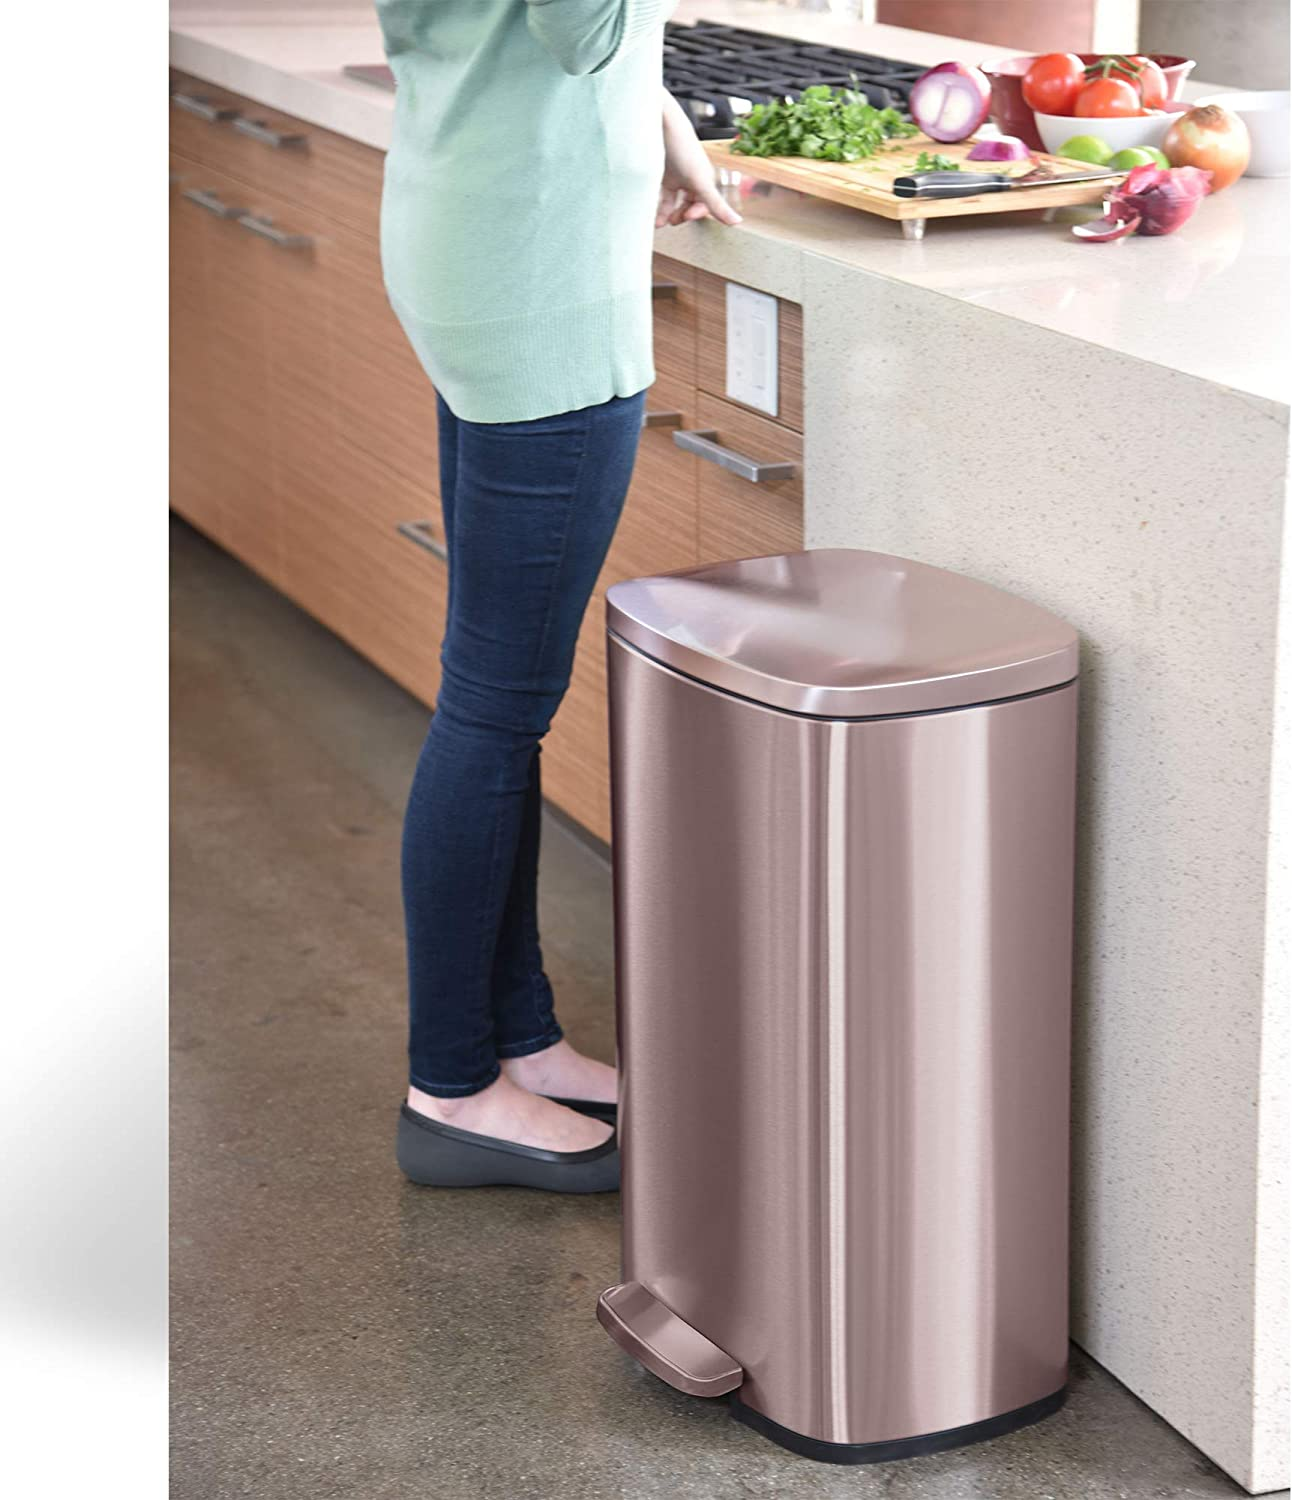 Silent and Gentle Open and Close, Office 50 Liter Trash Bin for Kitchen Home iTouchless SoftStep 13.2 Gallon Rose Gold Stainless Steel Step Pedal Garbage Can with with Odor Control System